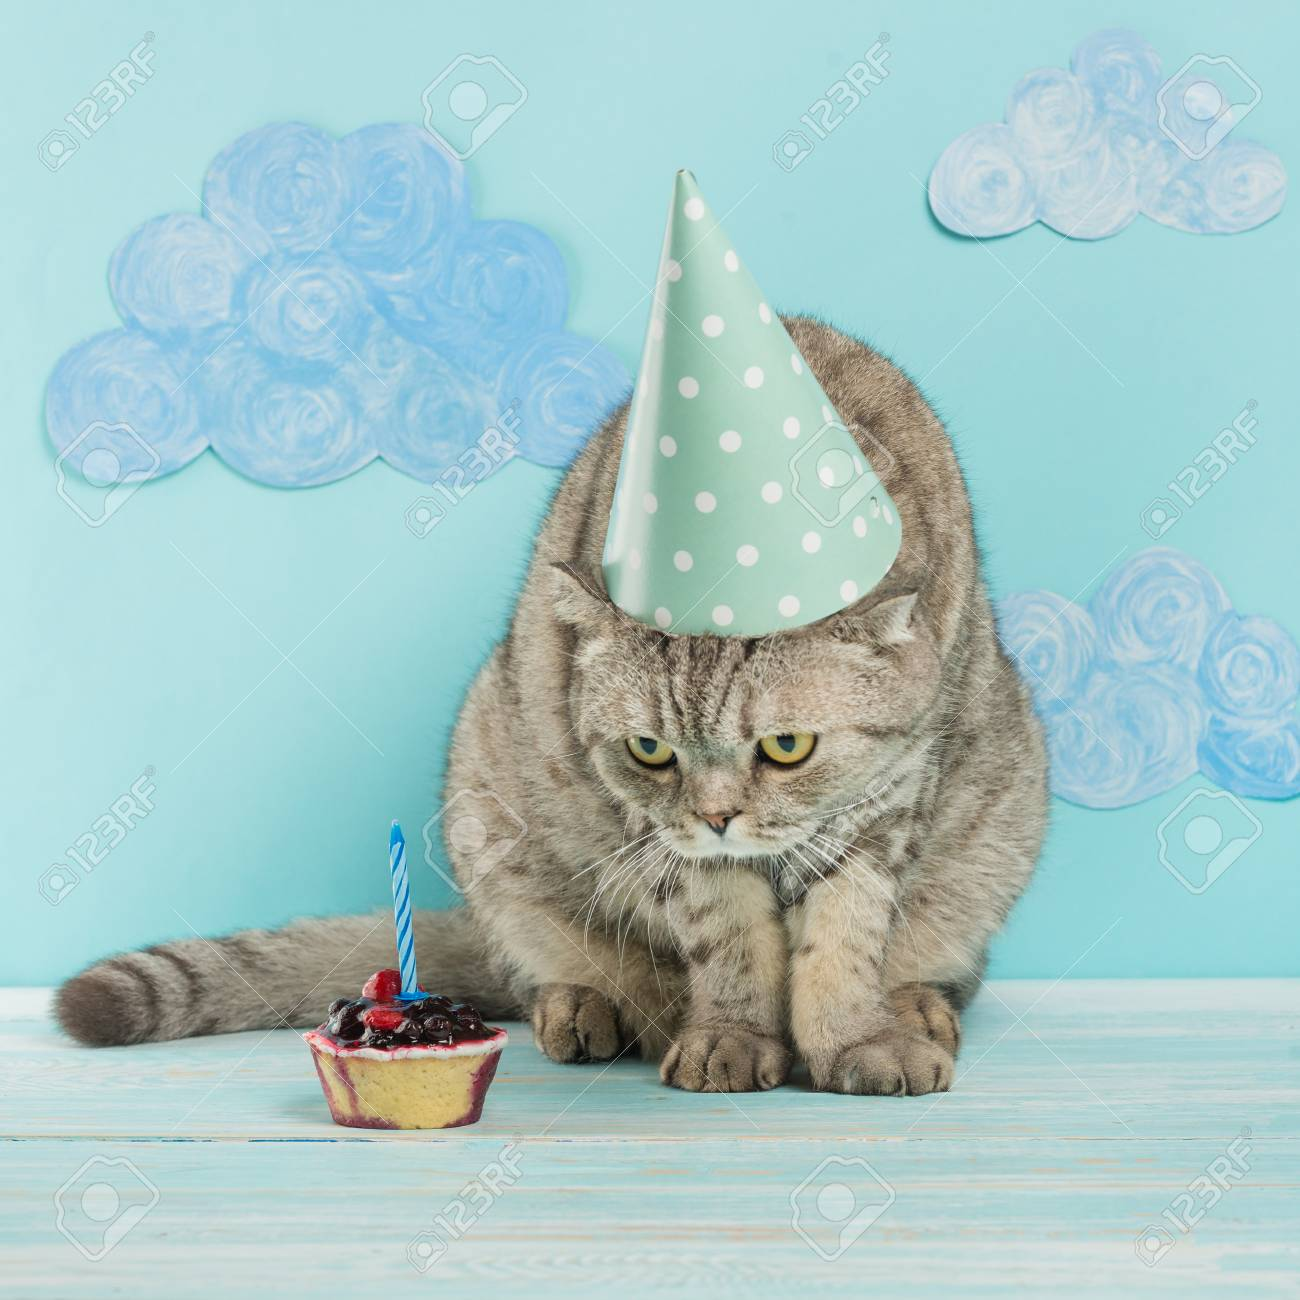 Birthday Greetings From A Cat Stock Photo